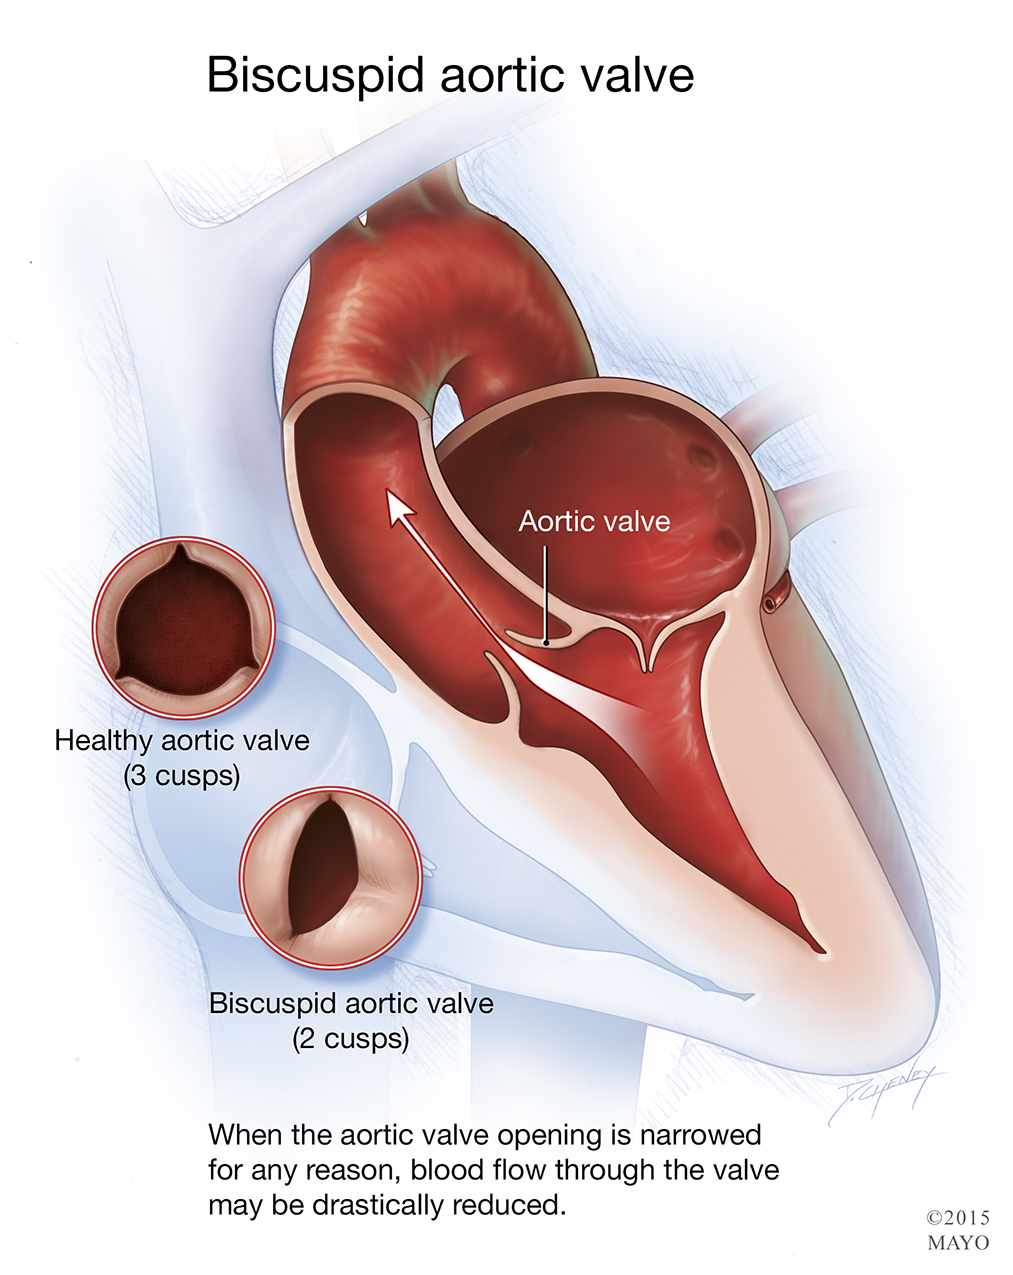 mayo clinic q and a: mild to moderate aortic stenosis typically